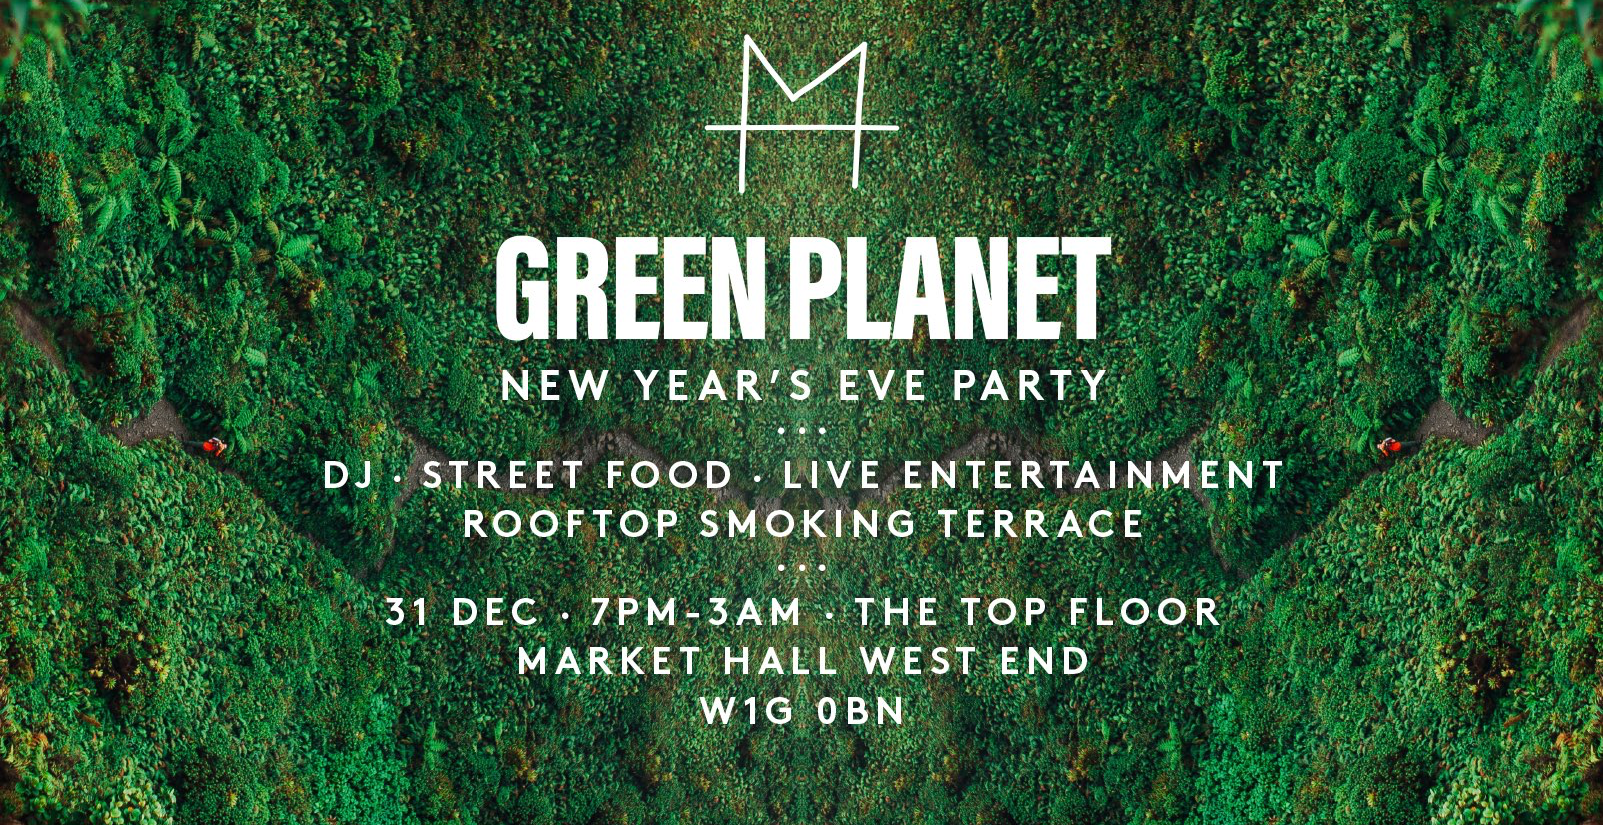 Green Planet New Year's Eve Party